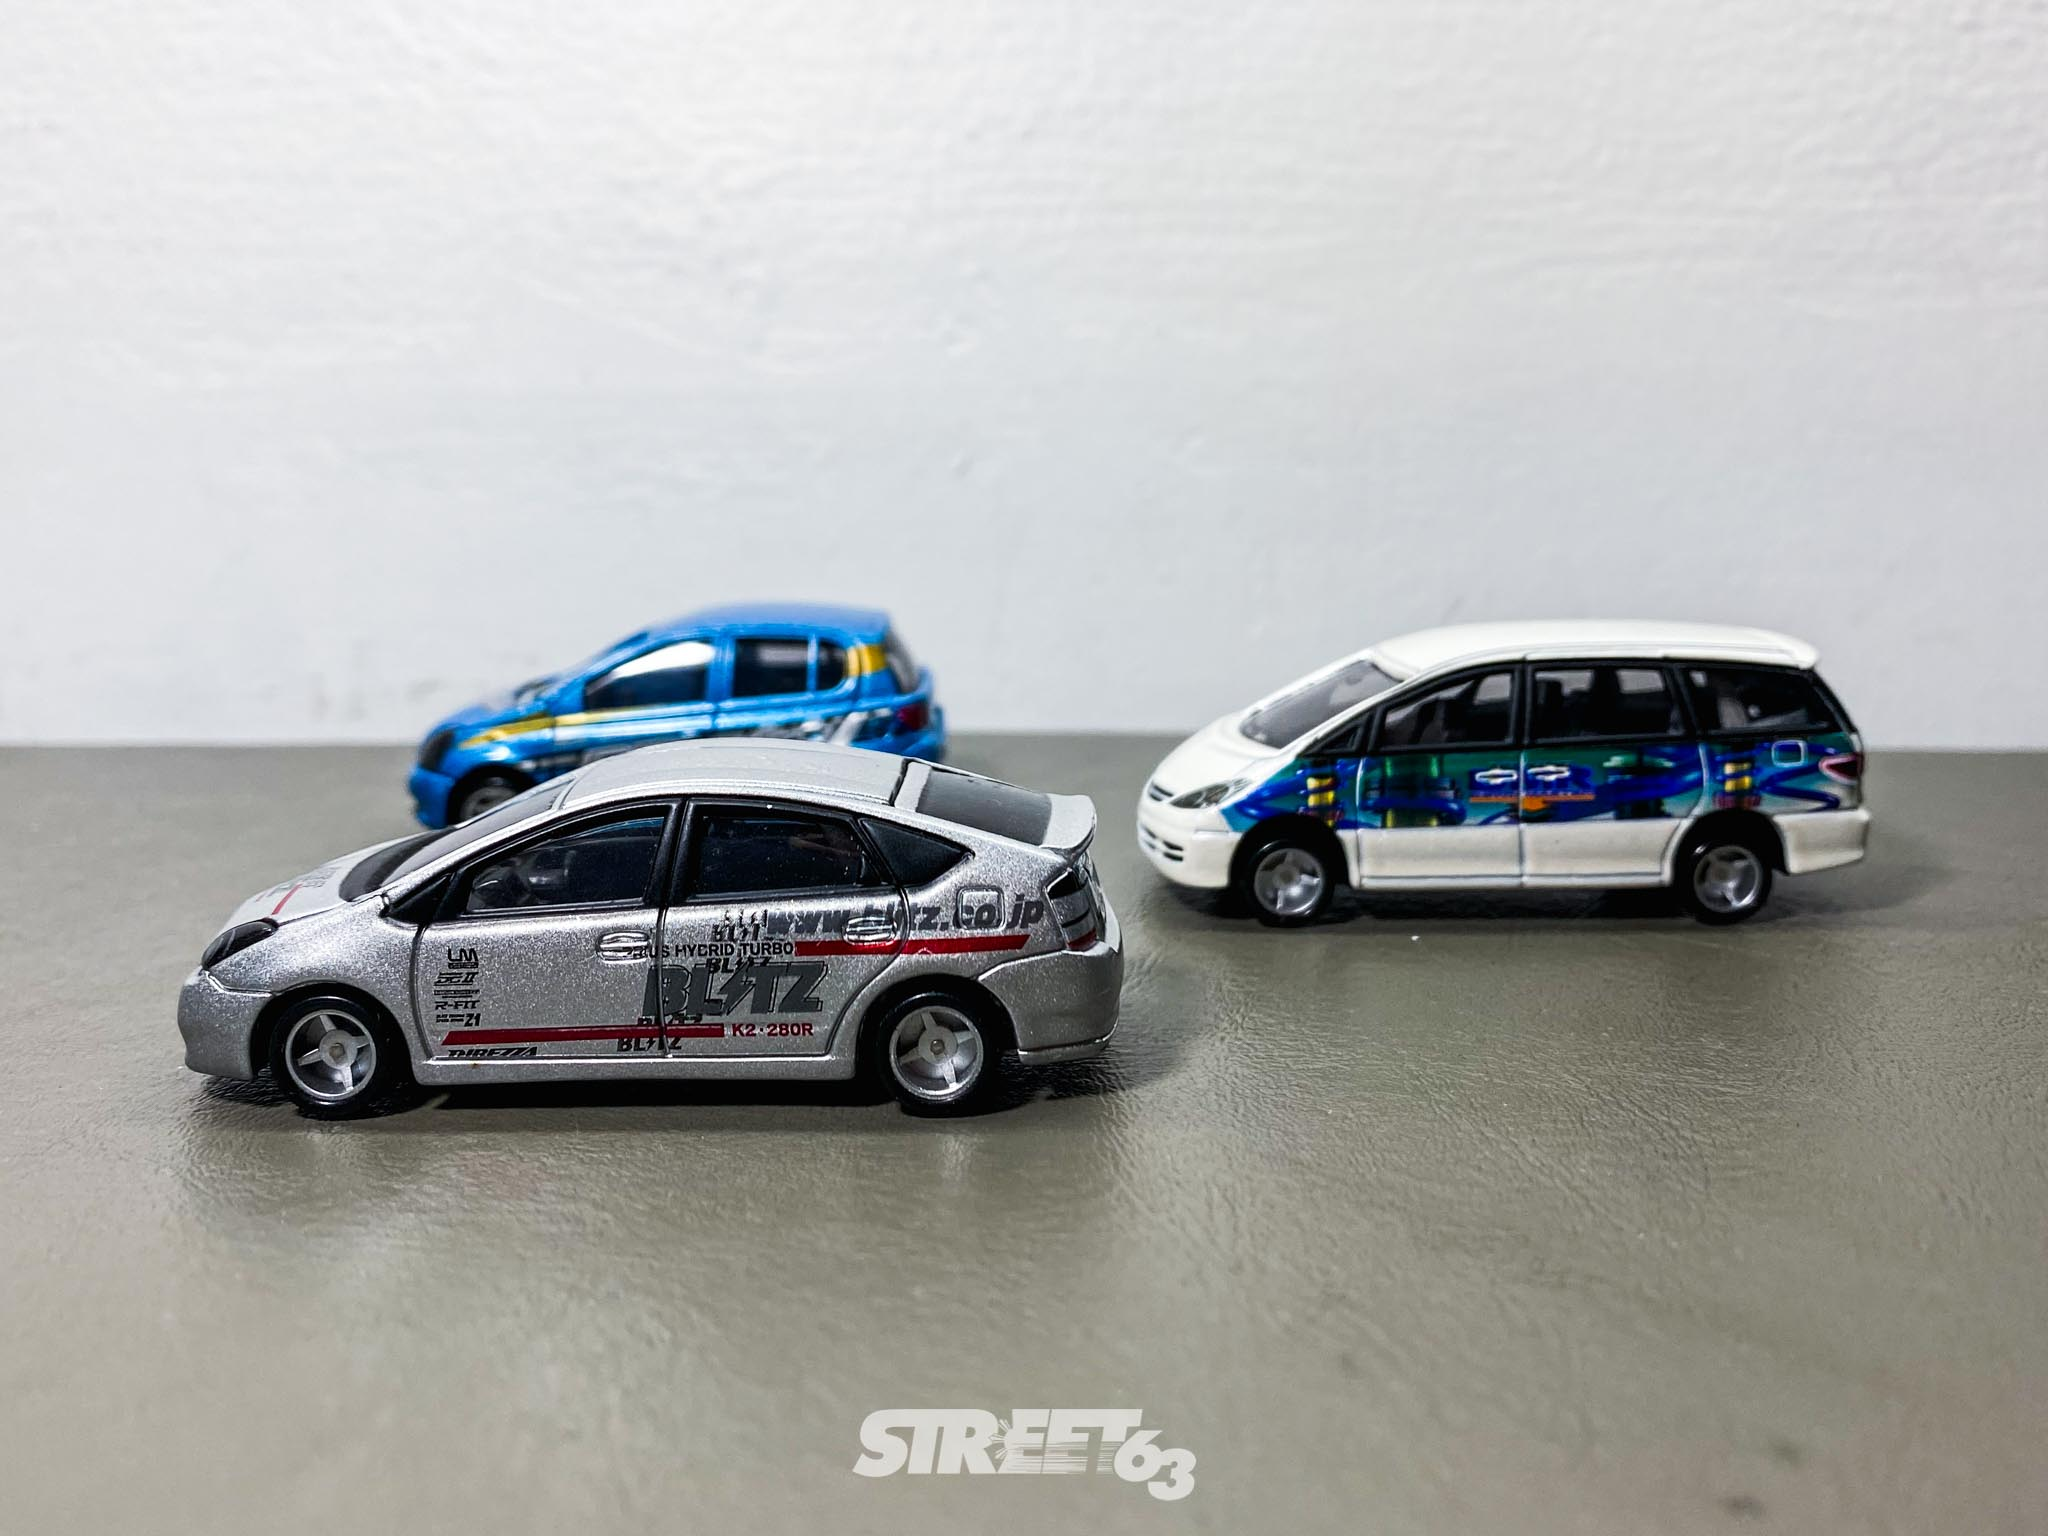 Mini63: The Street63 Diecast Collection 27